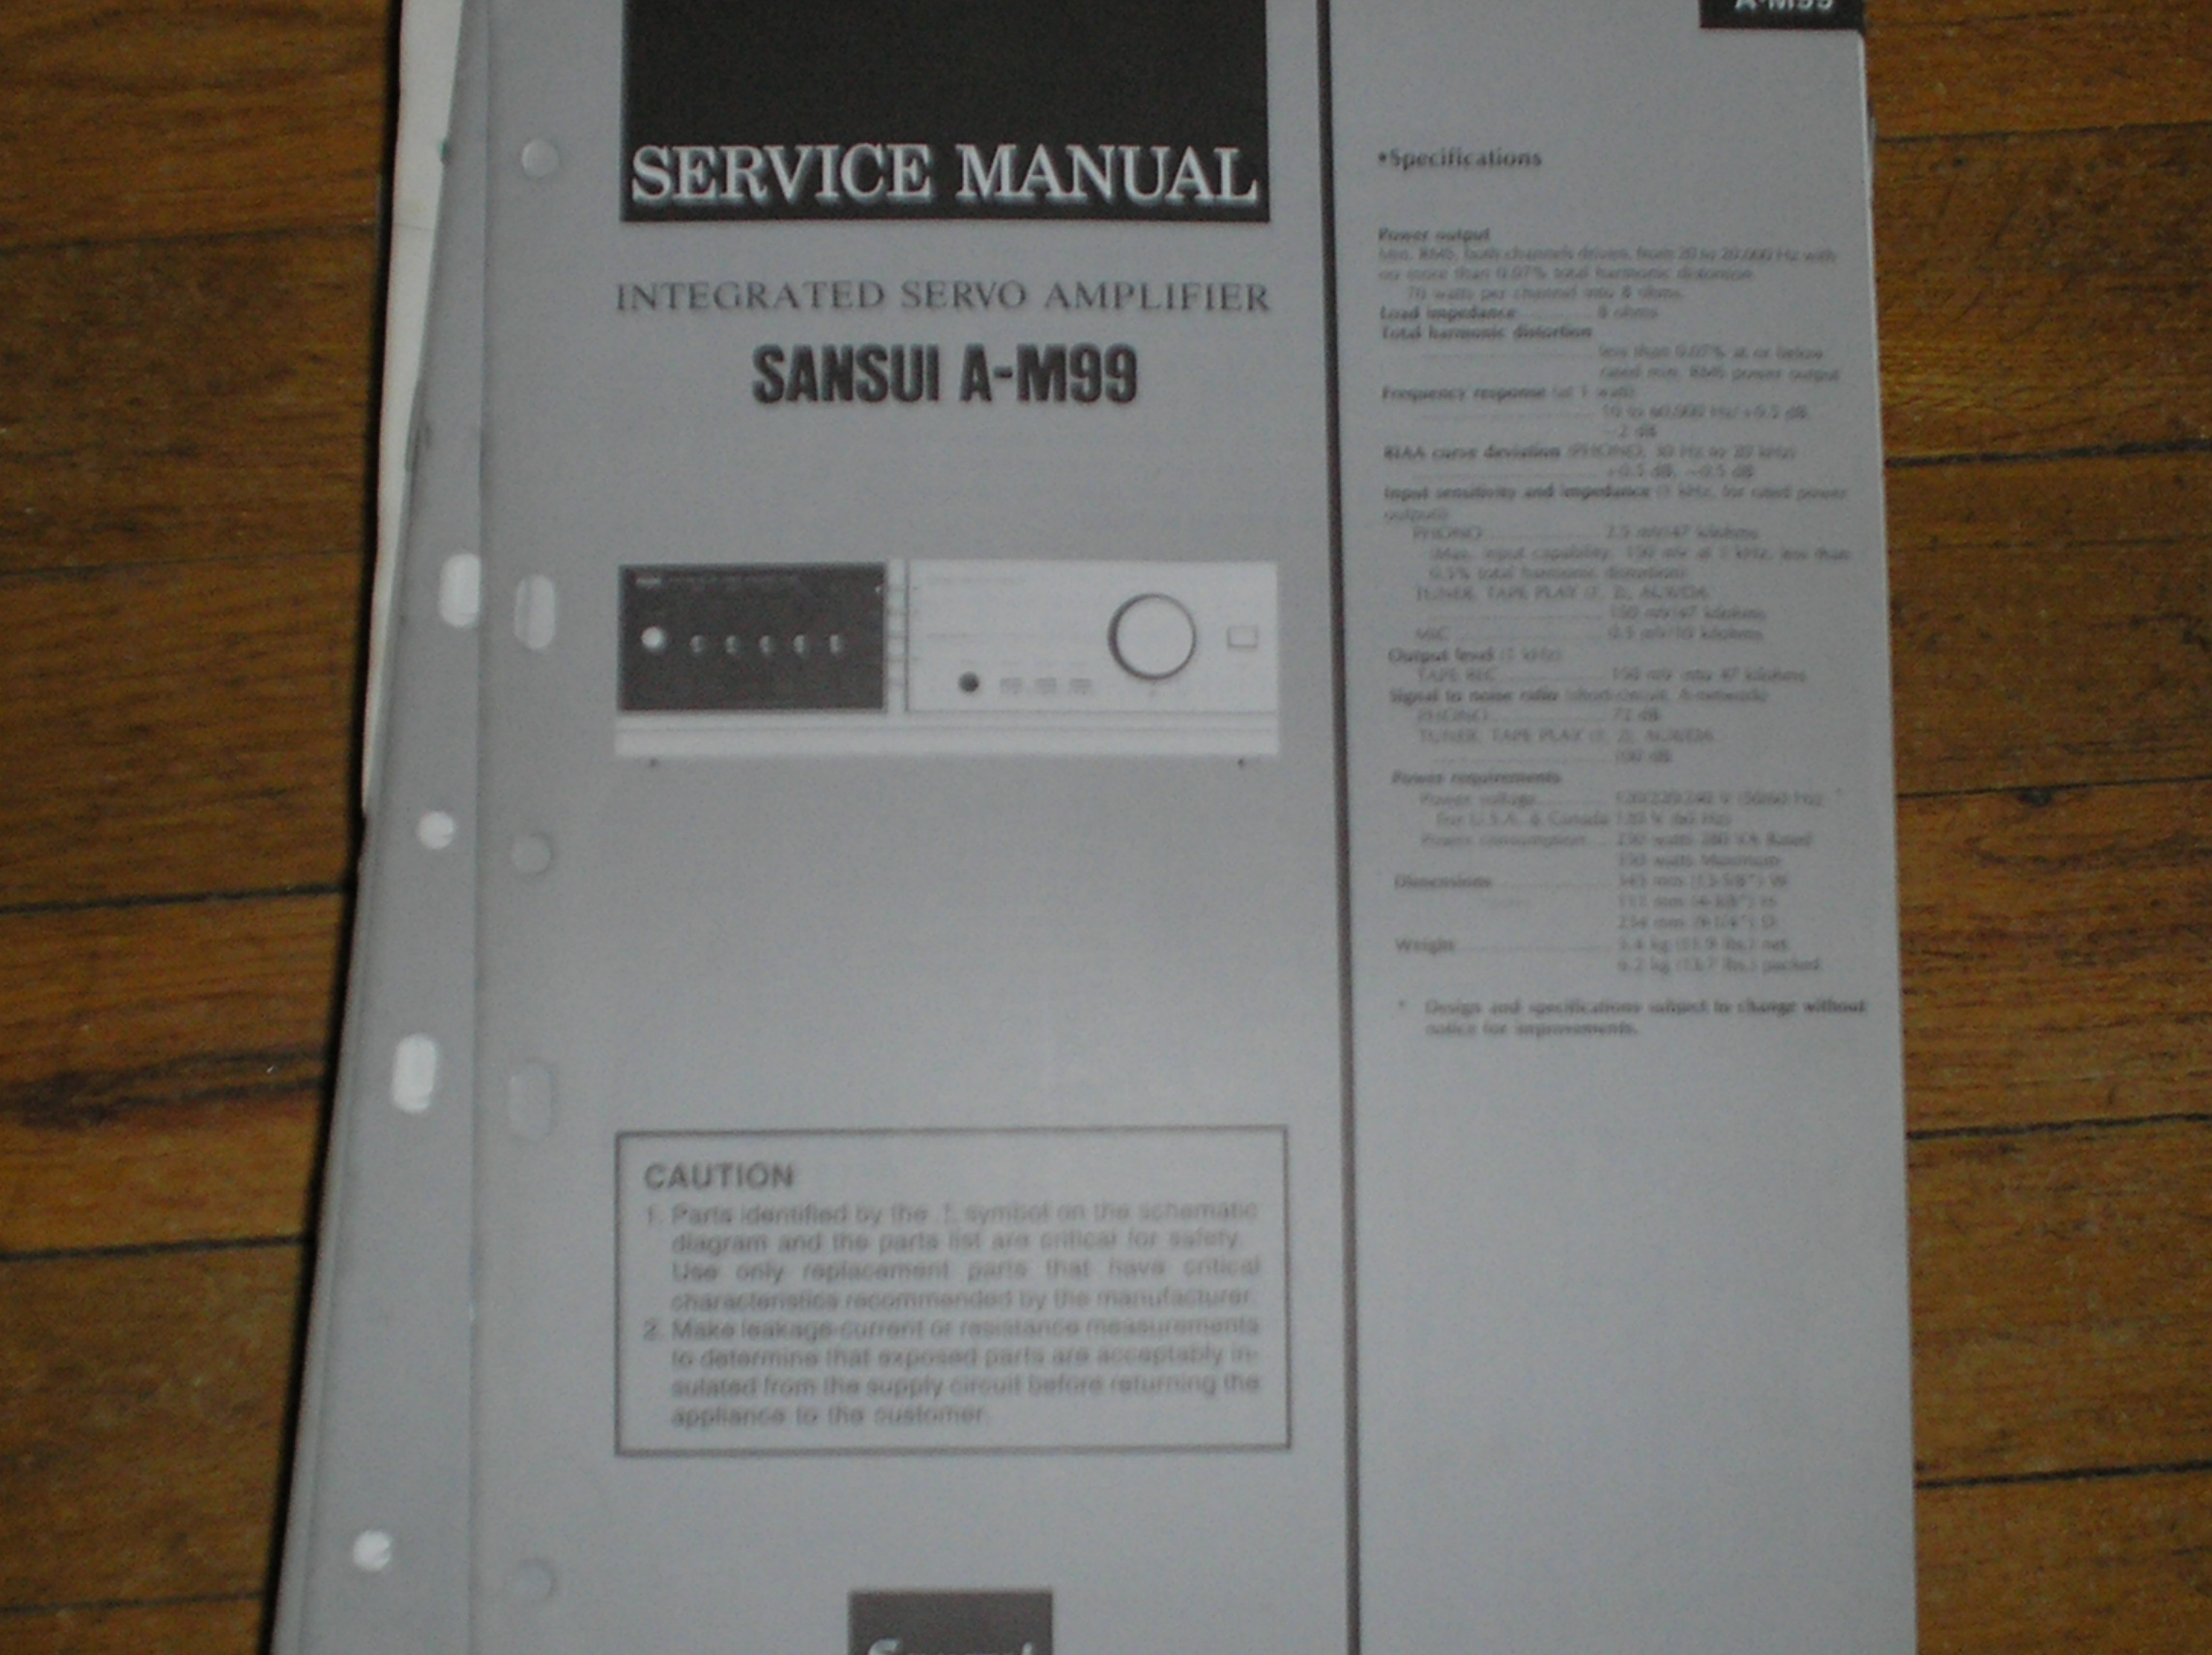 A-M99 Amplifier Service Manual